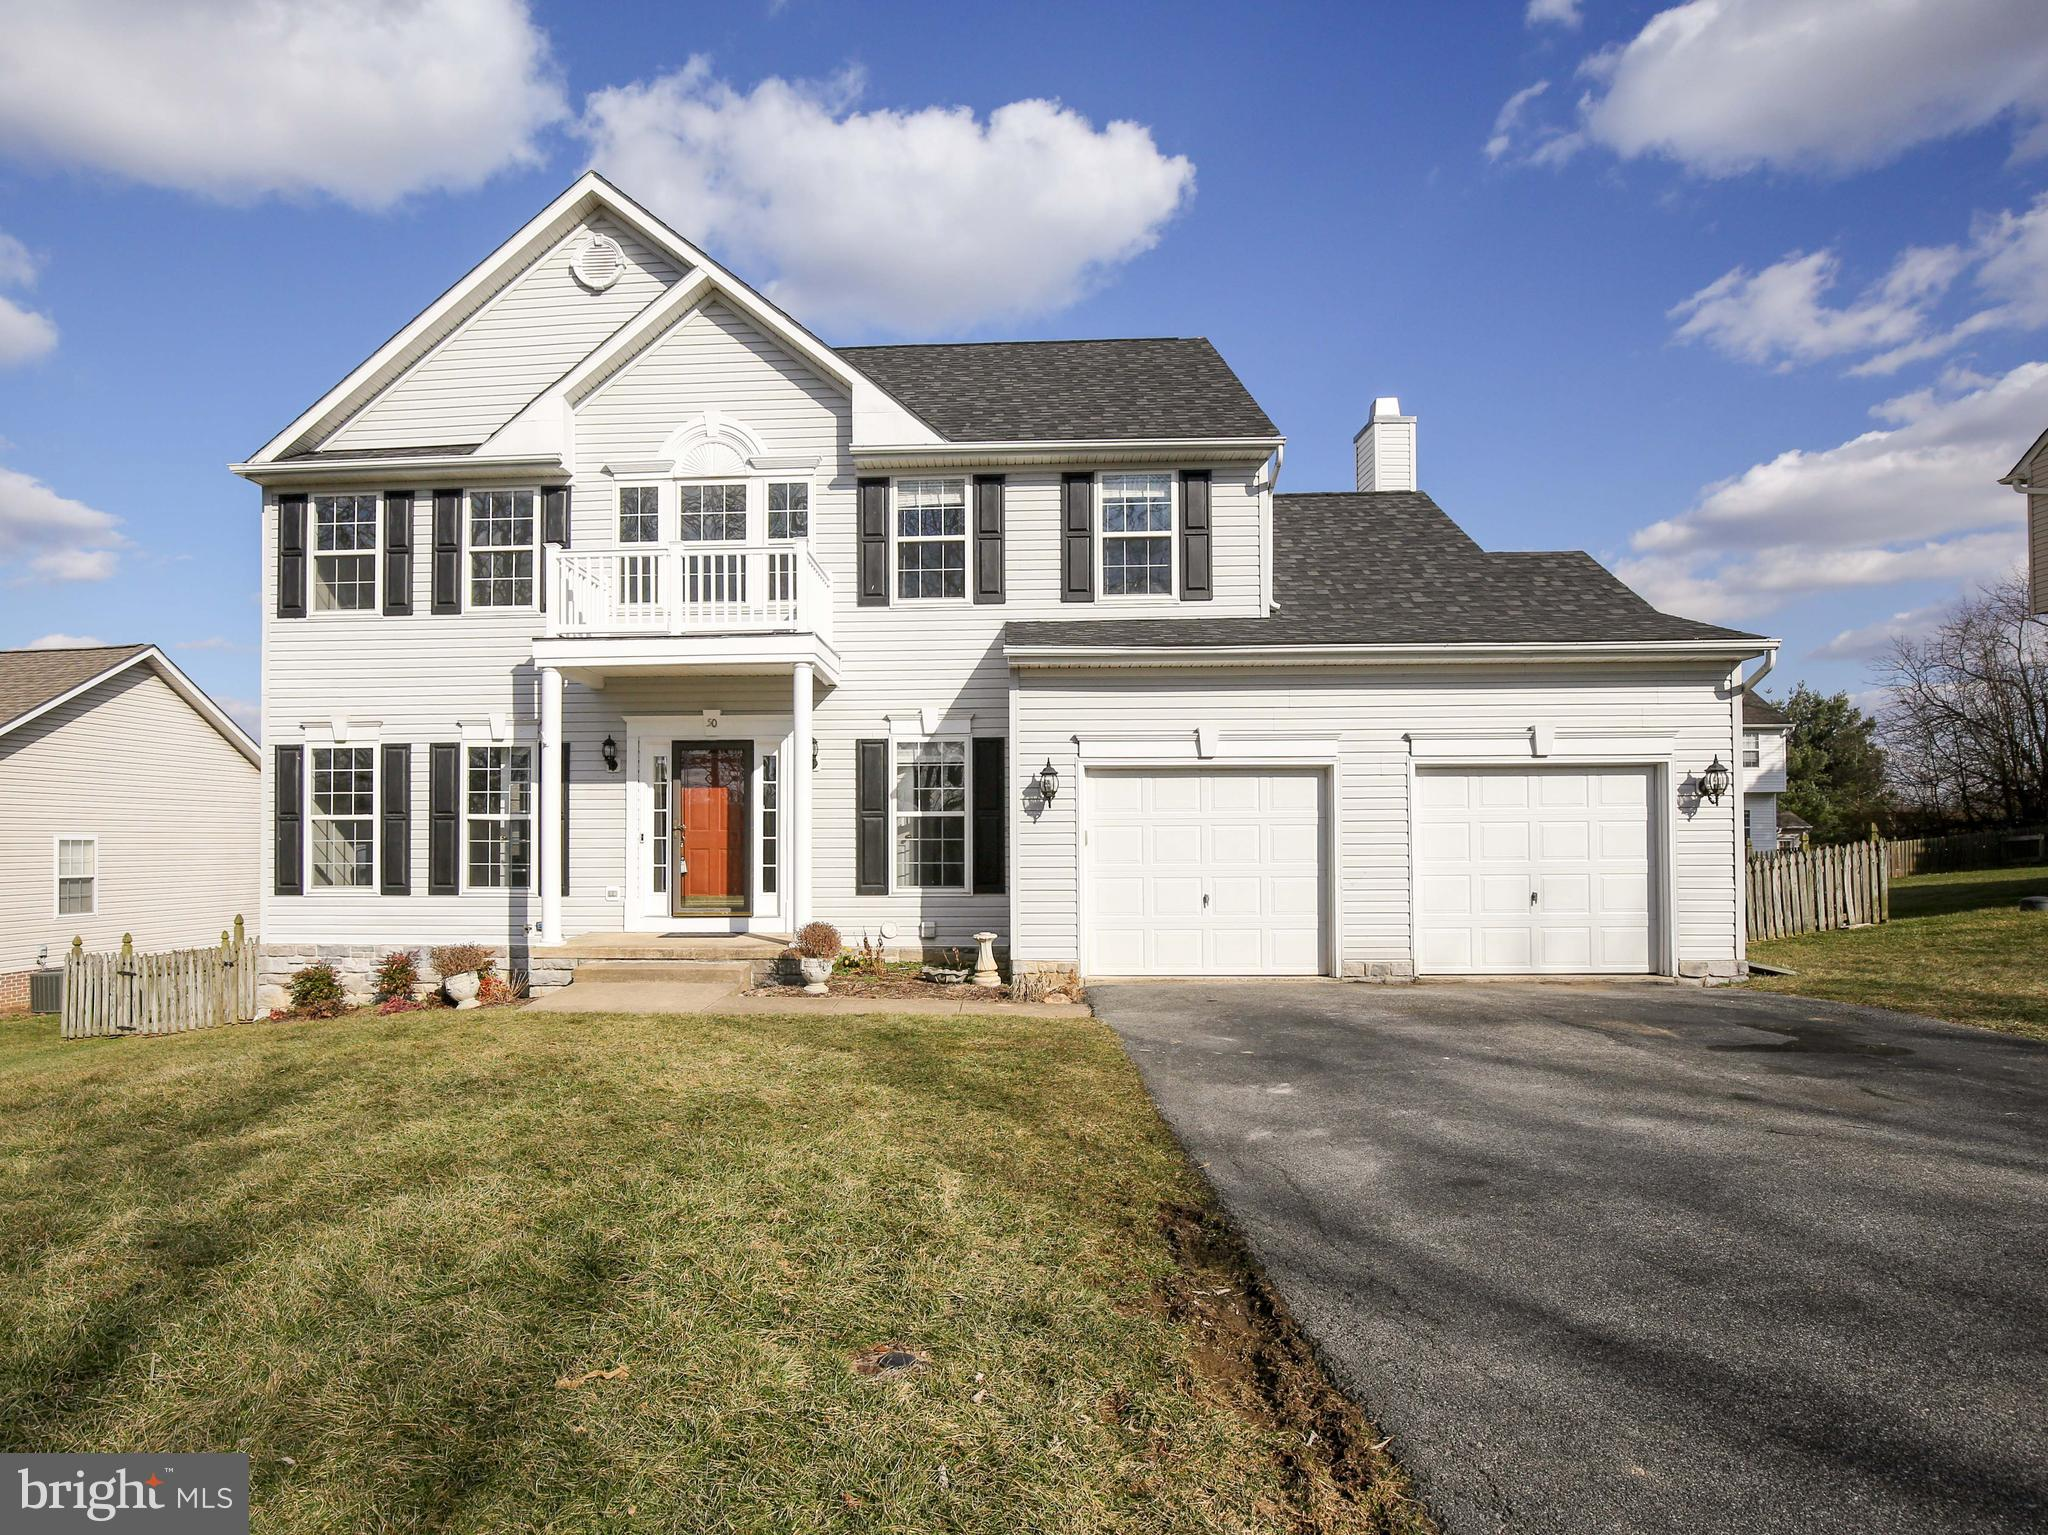 Don't miss the opportunity to own in sought after Locust Hill Golf Course community. Freshly painted